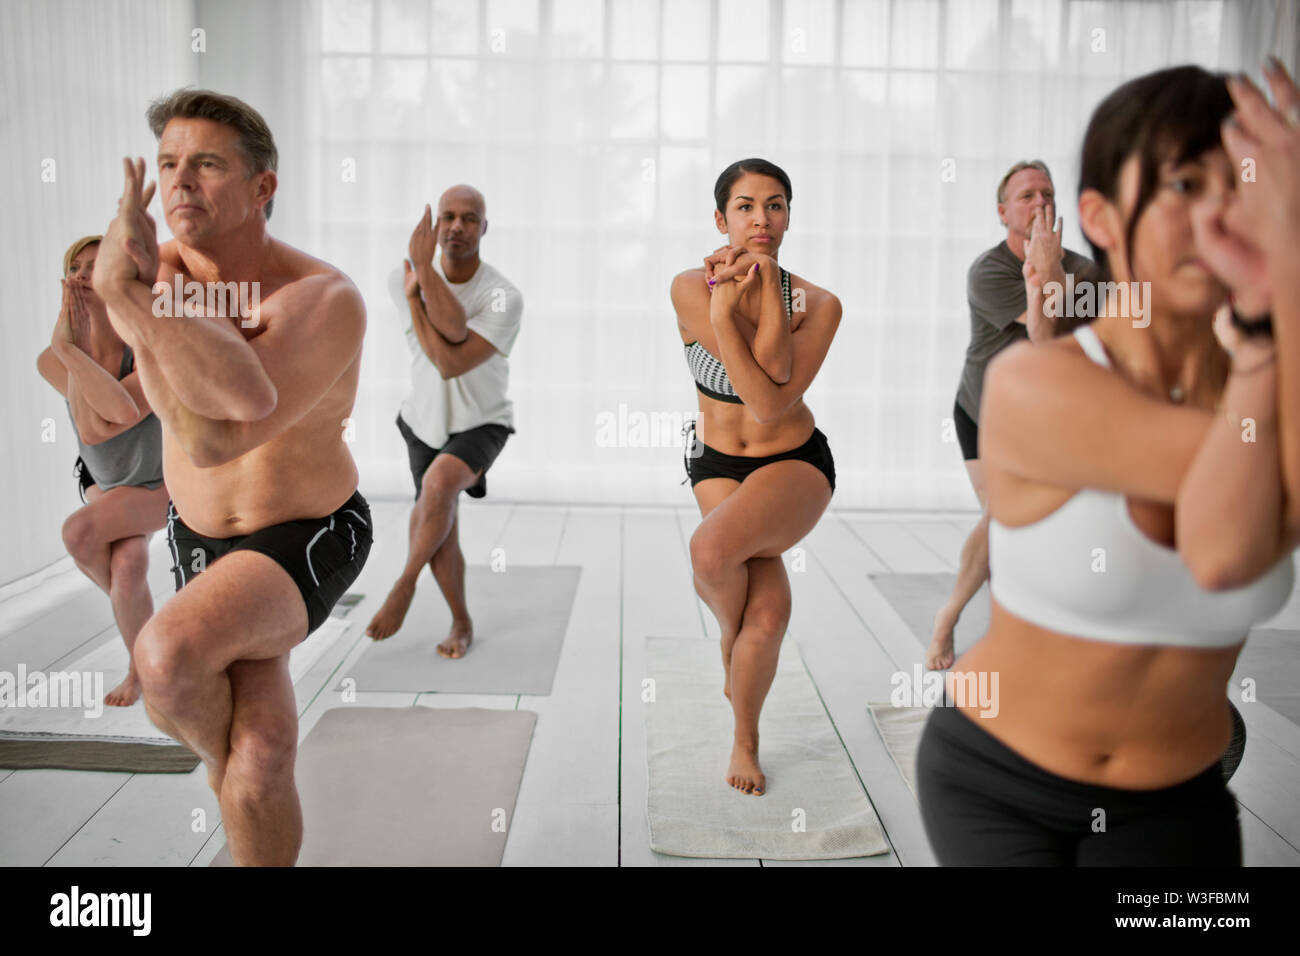 People practising the eagle pose during a yoga class. - Stock Image